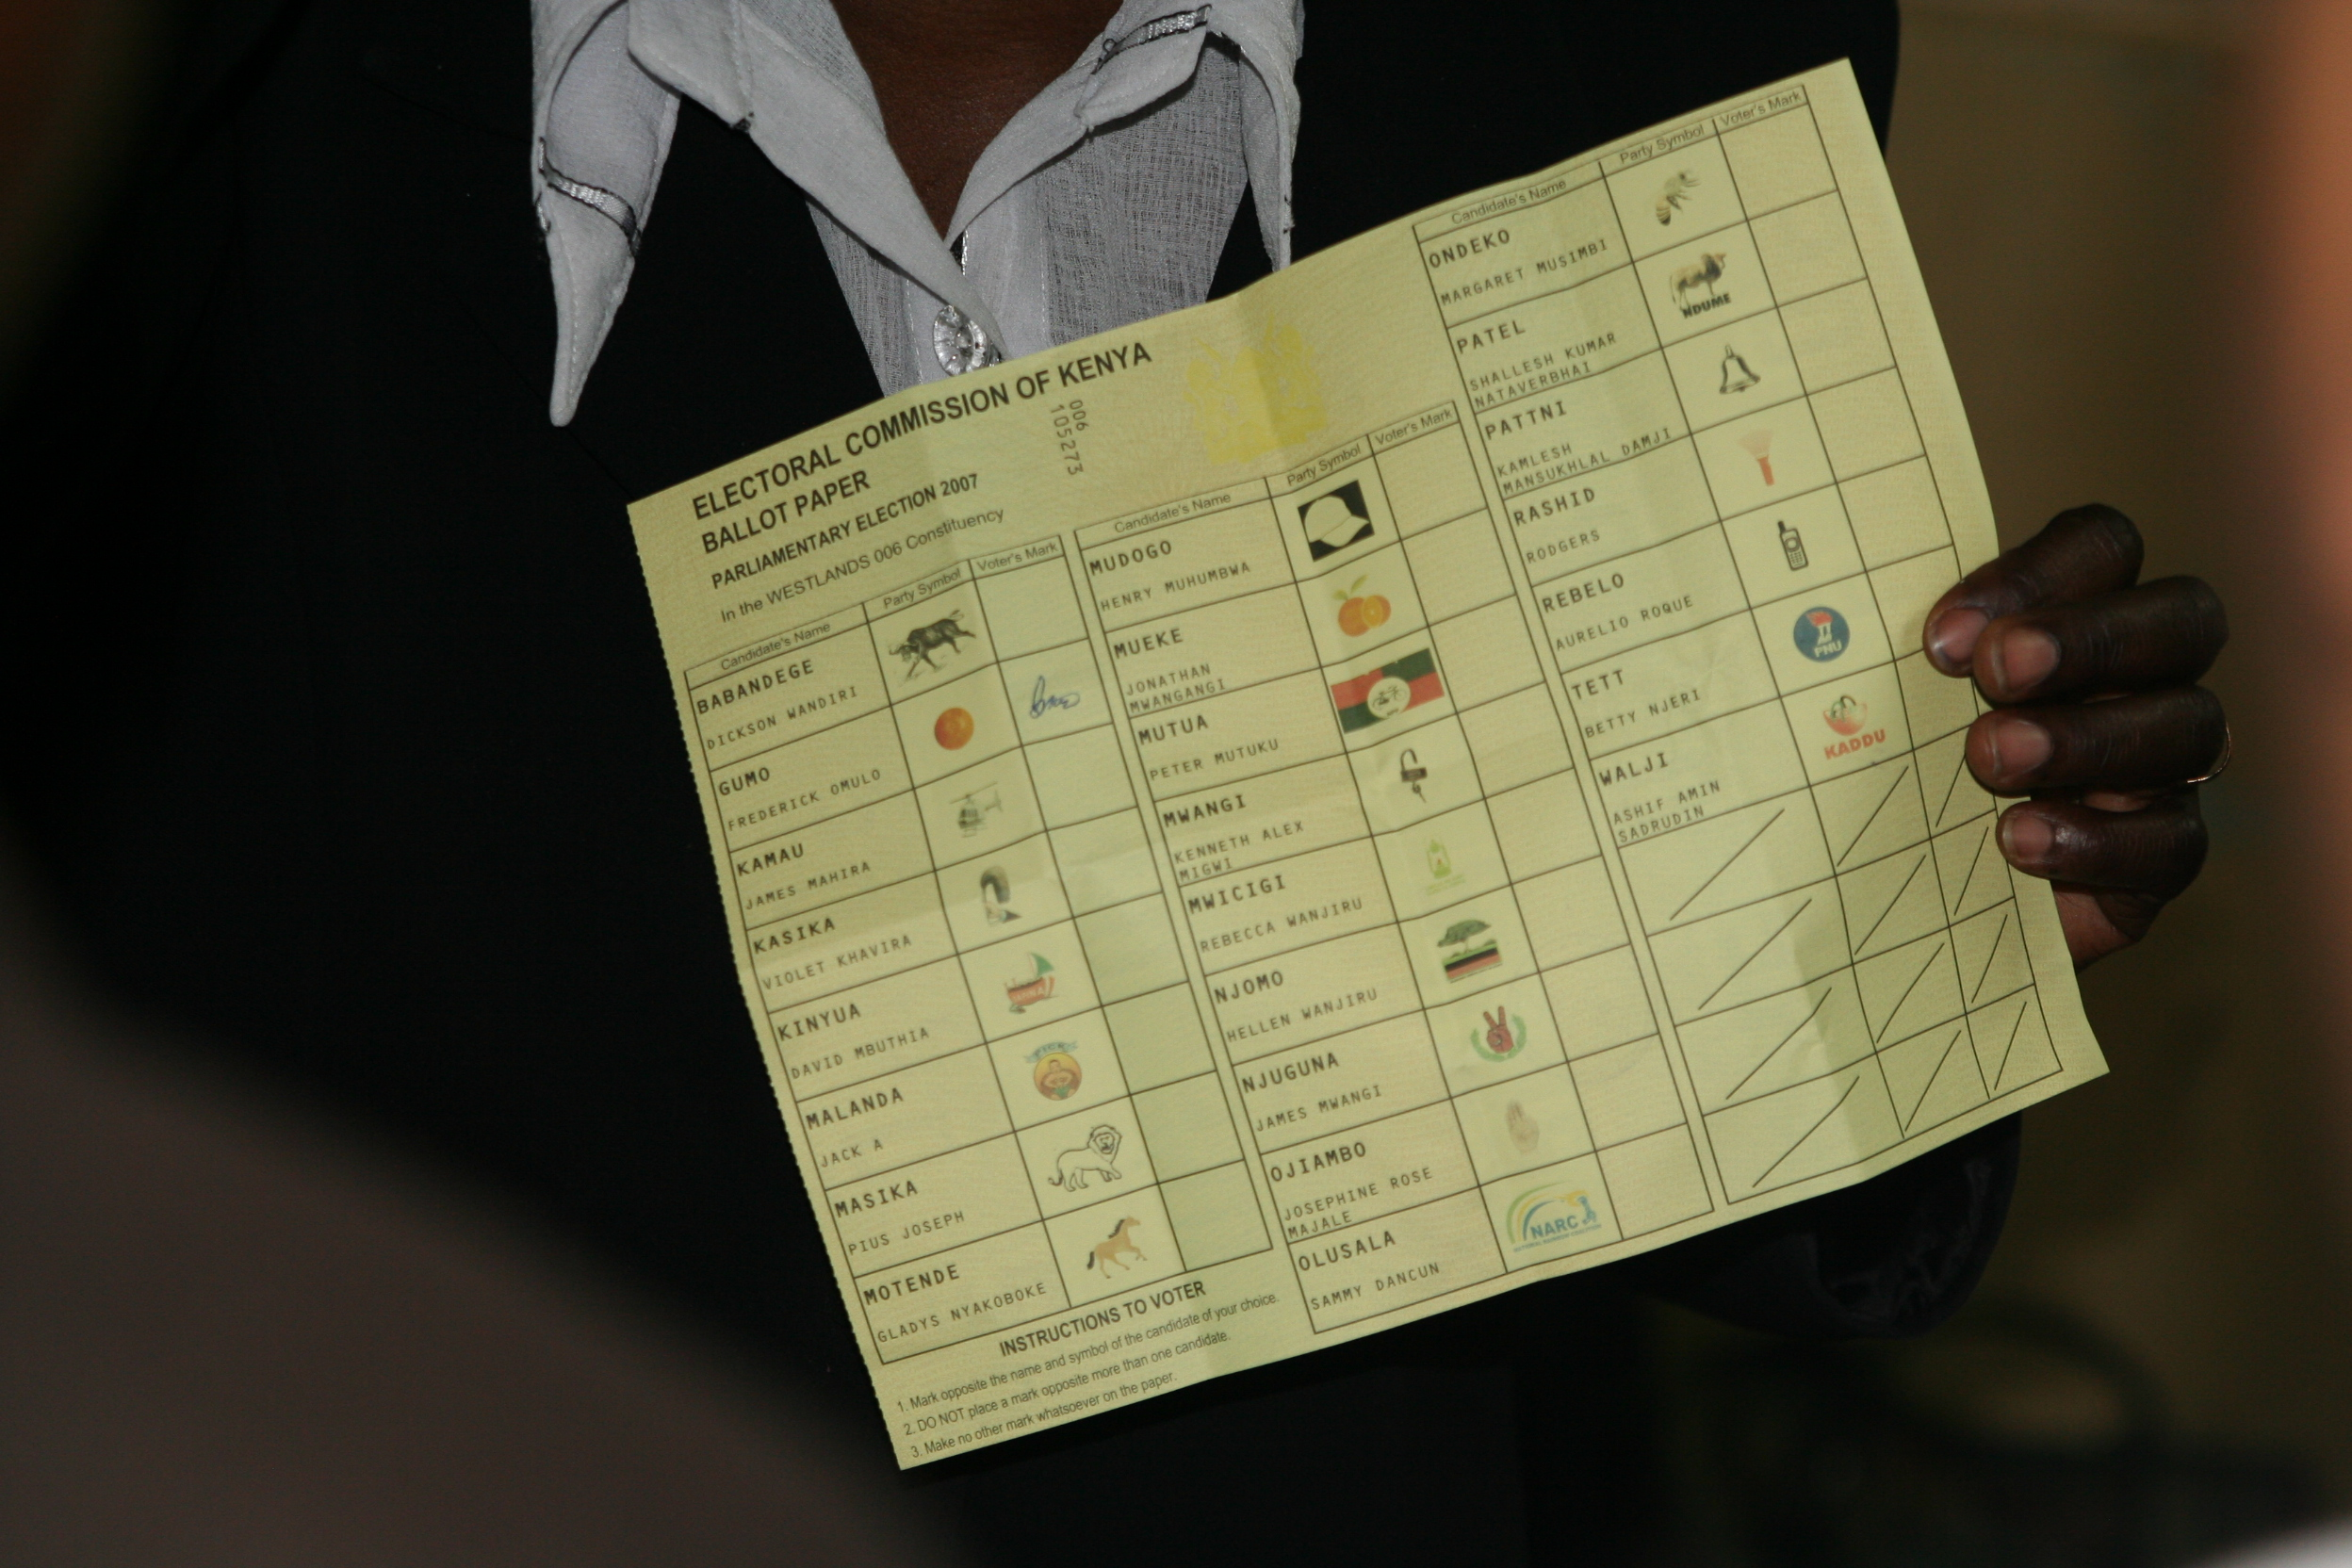 """""""THE DEBACLE OF 2007"""" – my piece in The Elephant on how Kenya's politics was frozen and an election stolen . . ."""